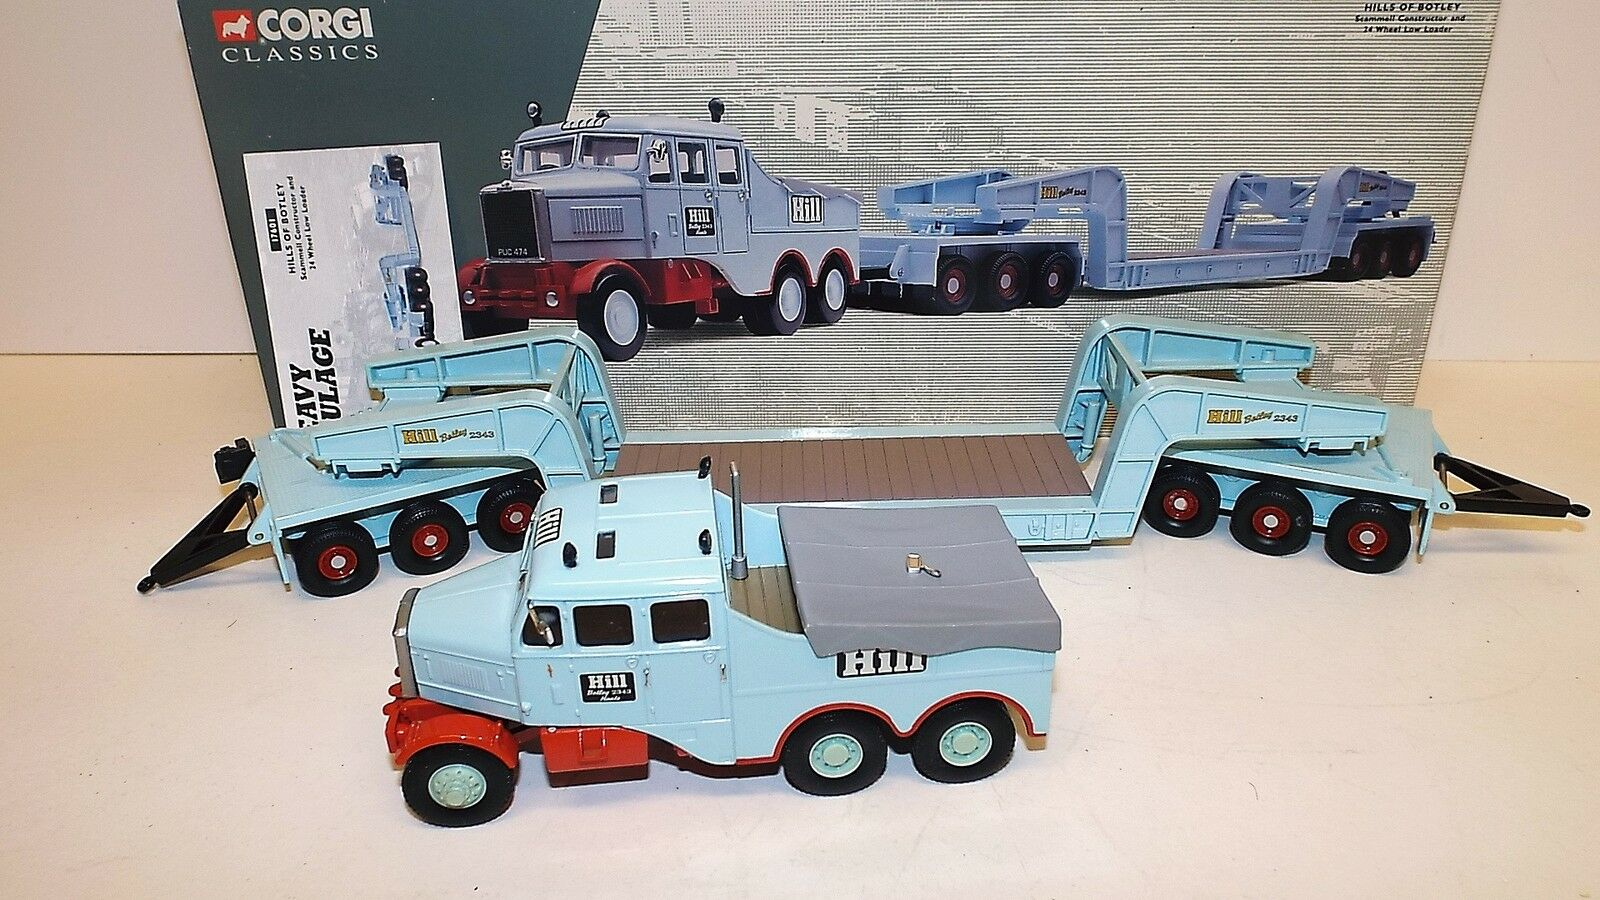 CORGI 17601 HILLS OF BOTLEY SCAMMELL & 24 WHEEL LOW LOADER MINT BOXED (C79)